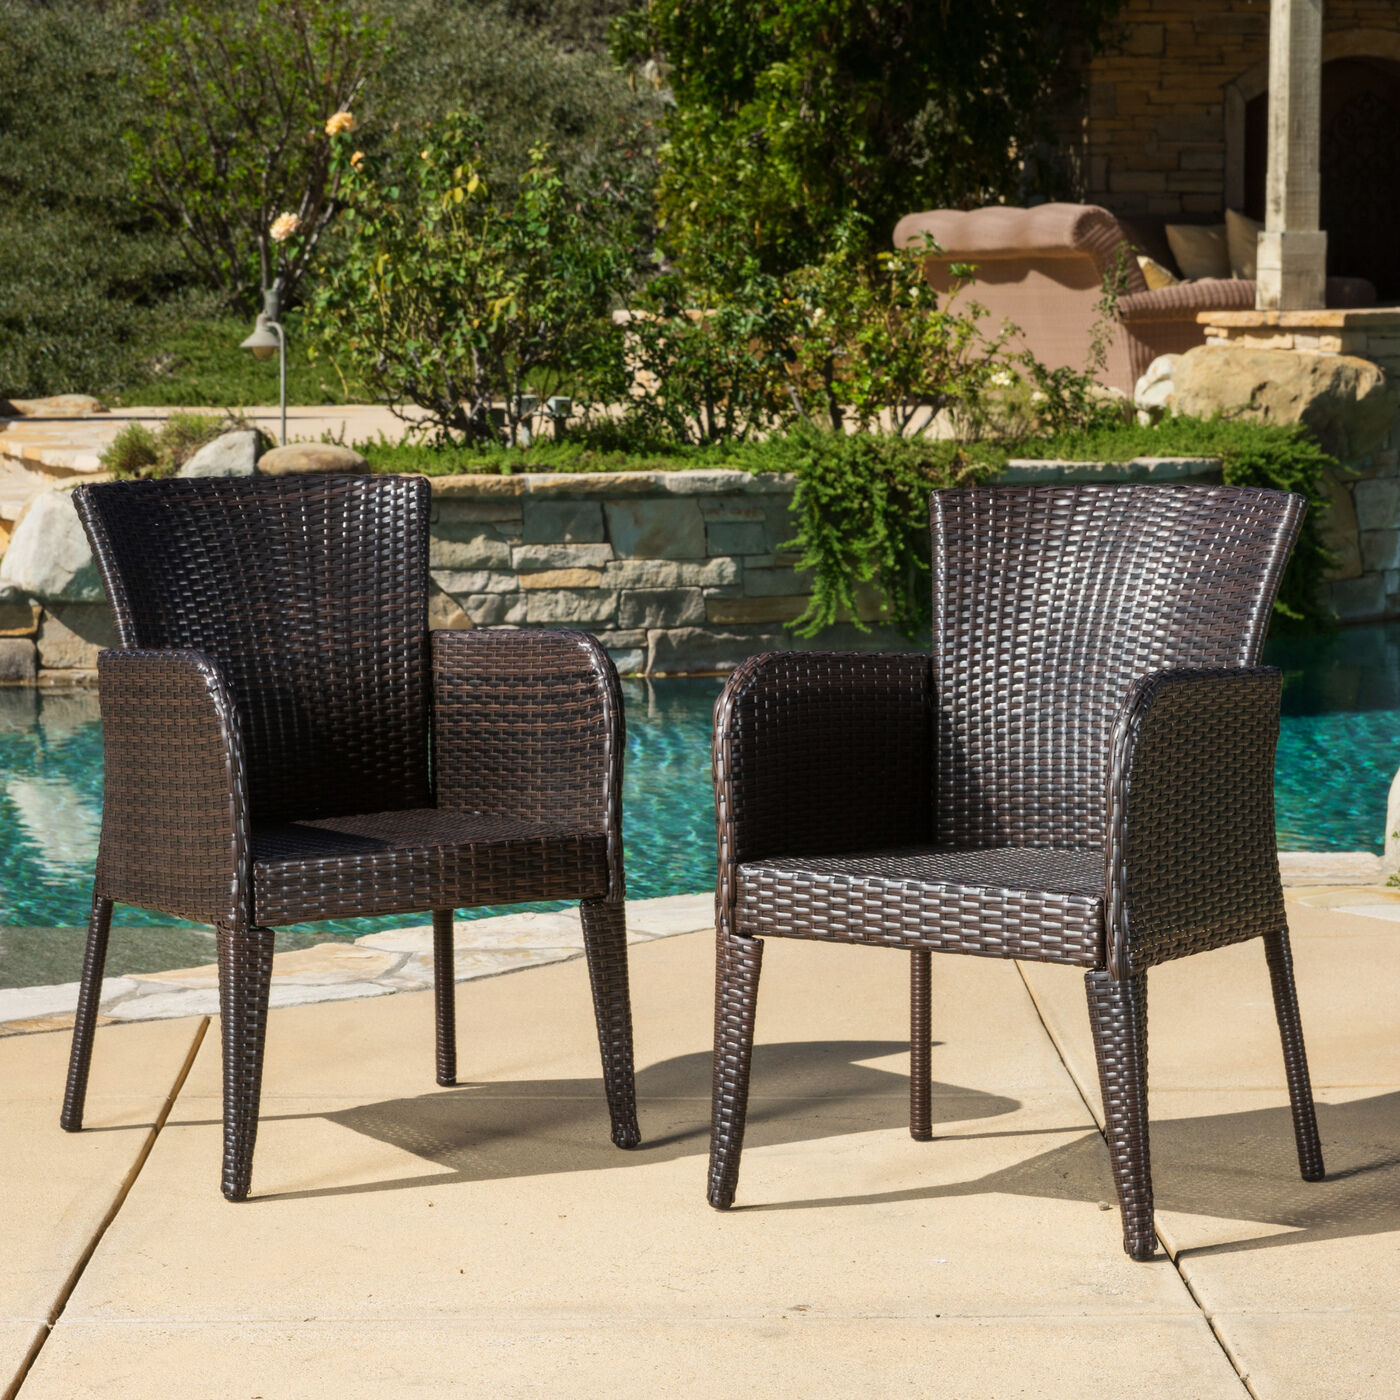 Modern Outdoor Chair Outdoor Patio Set Modern Rattan Bistro Contemporary Wicker